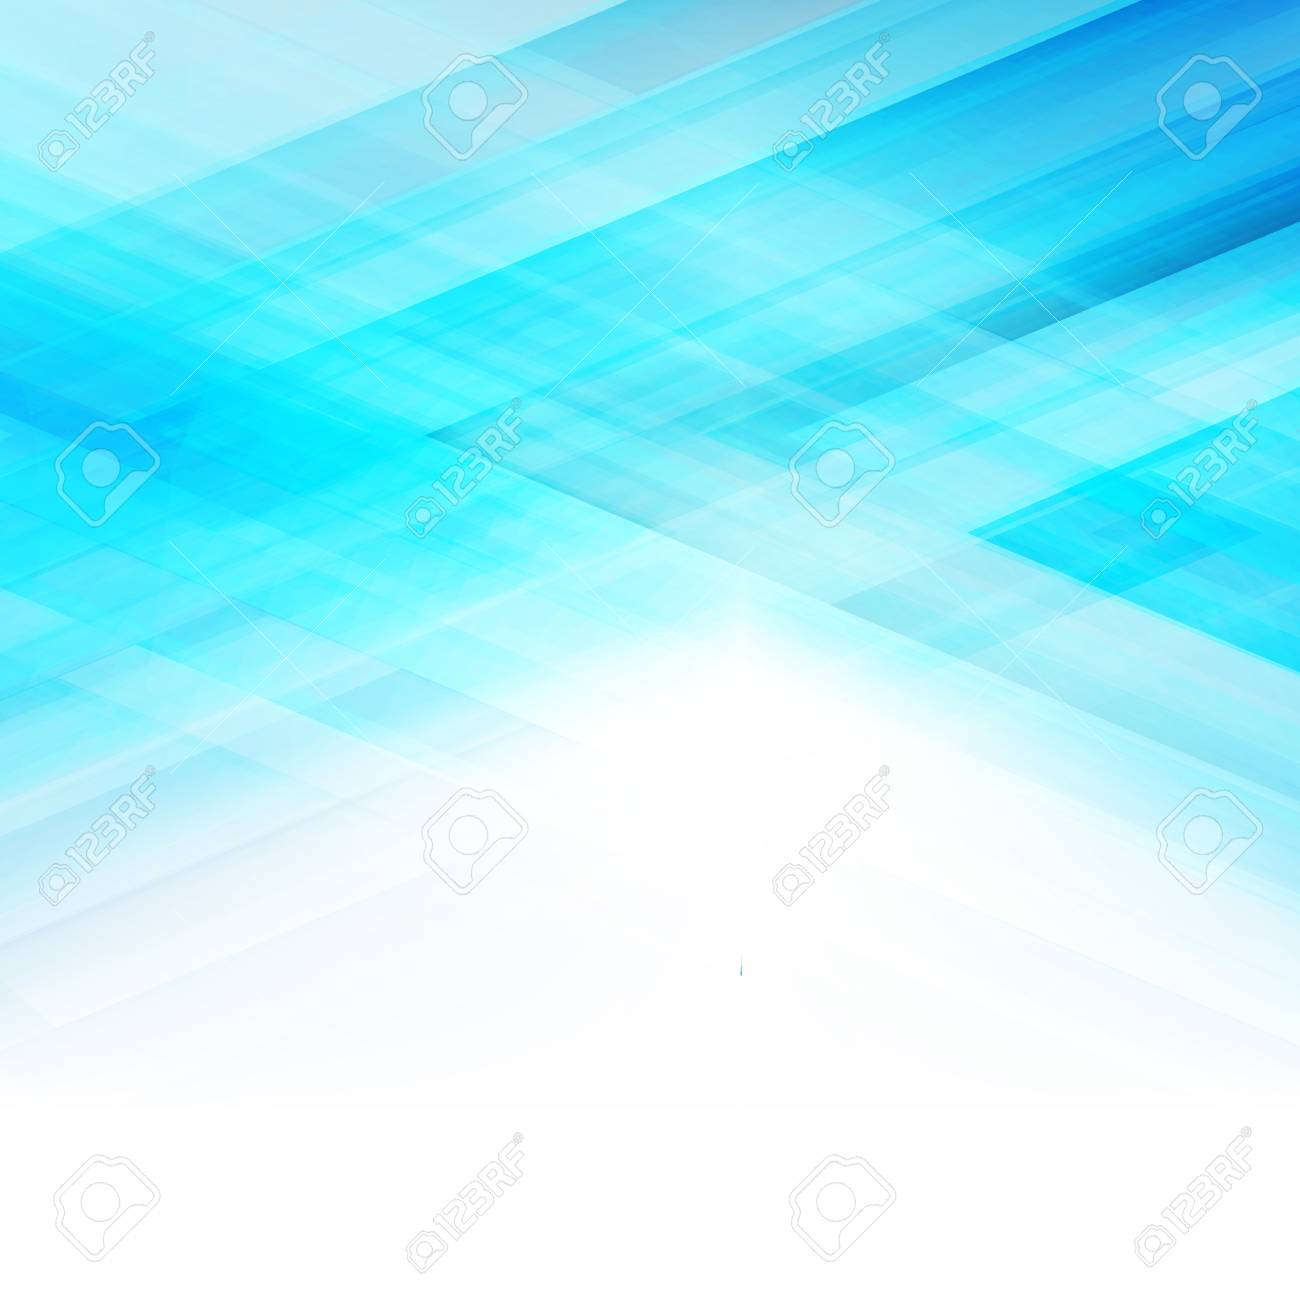 Abstract Background. A Template for Brochures, Covers etc. - 54344241